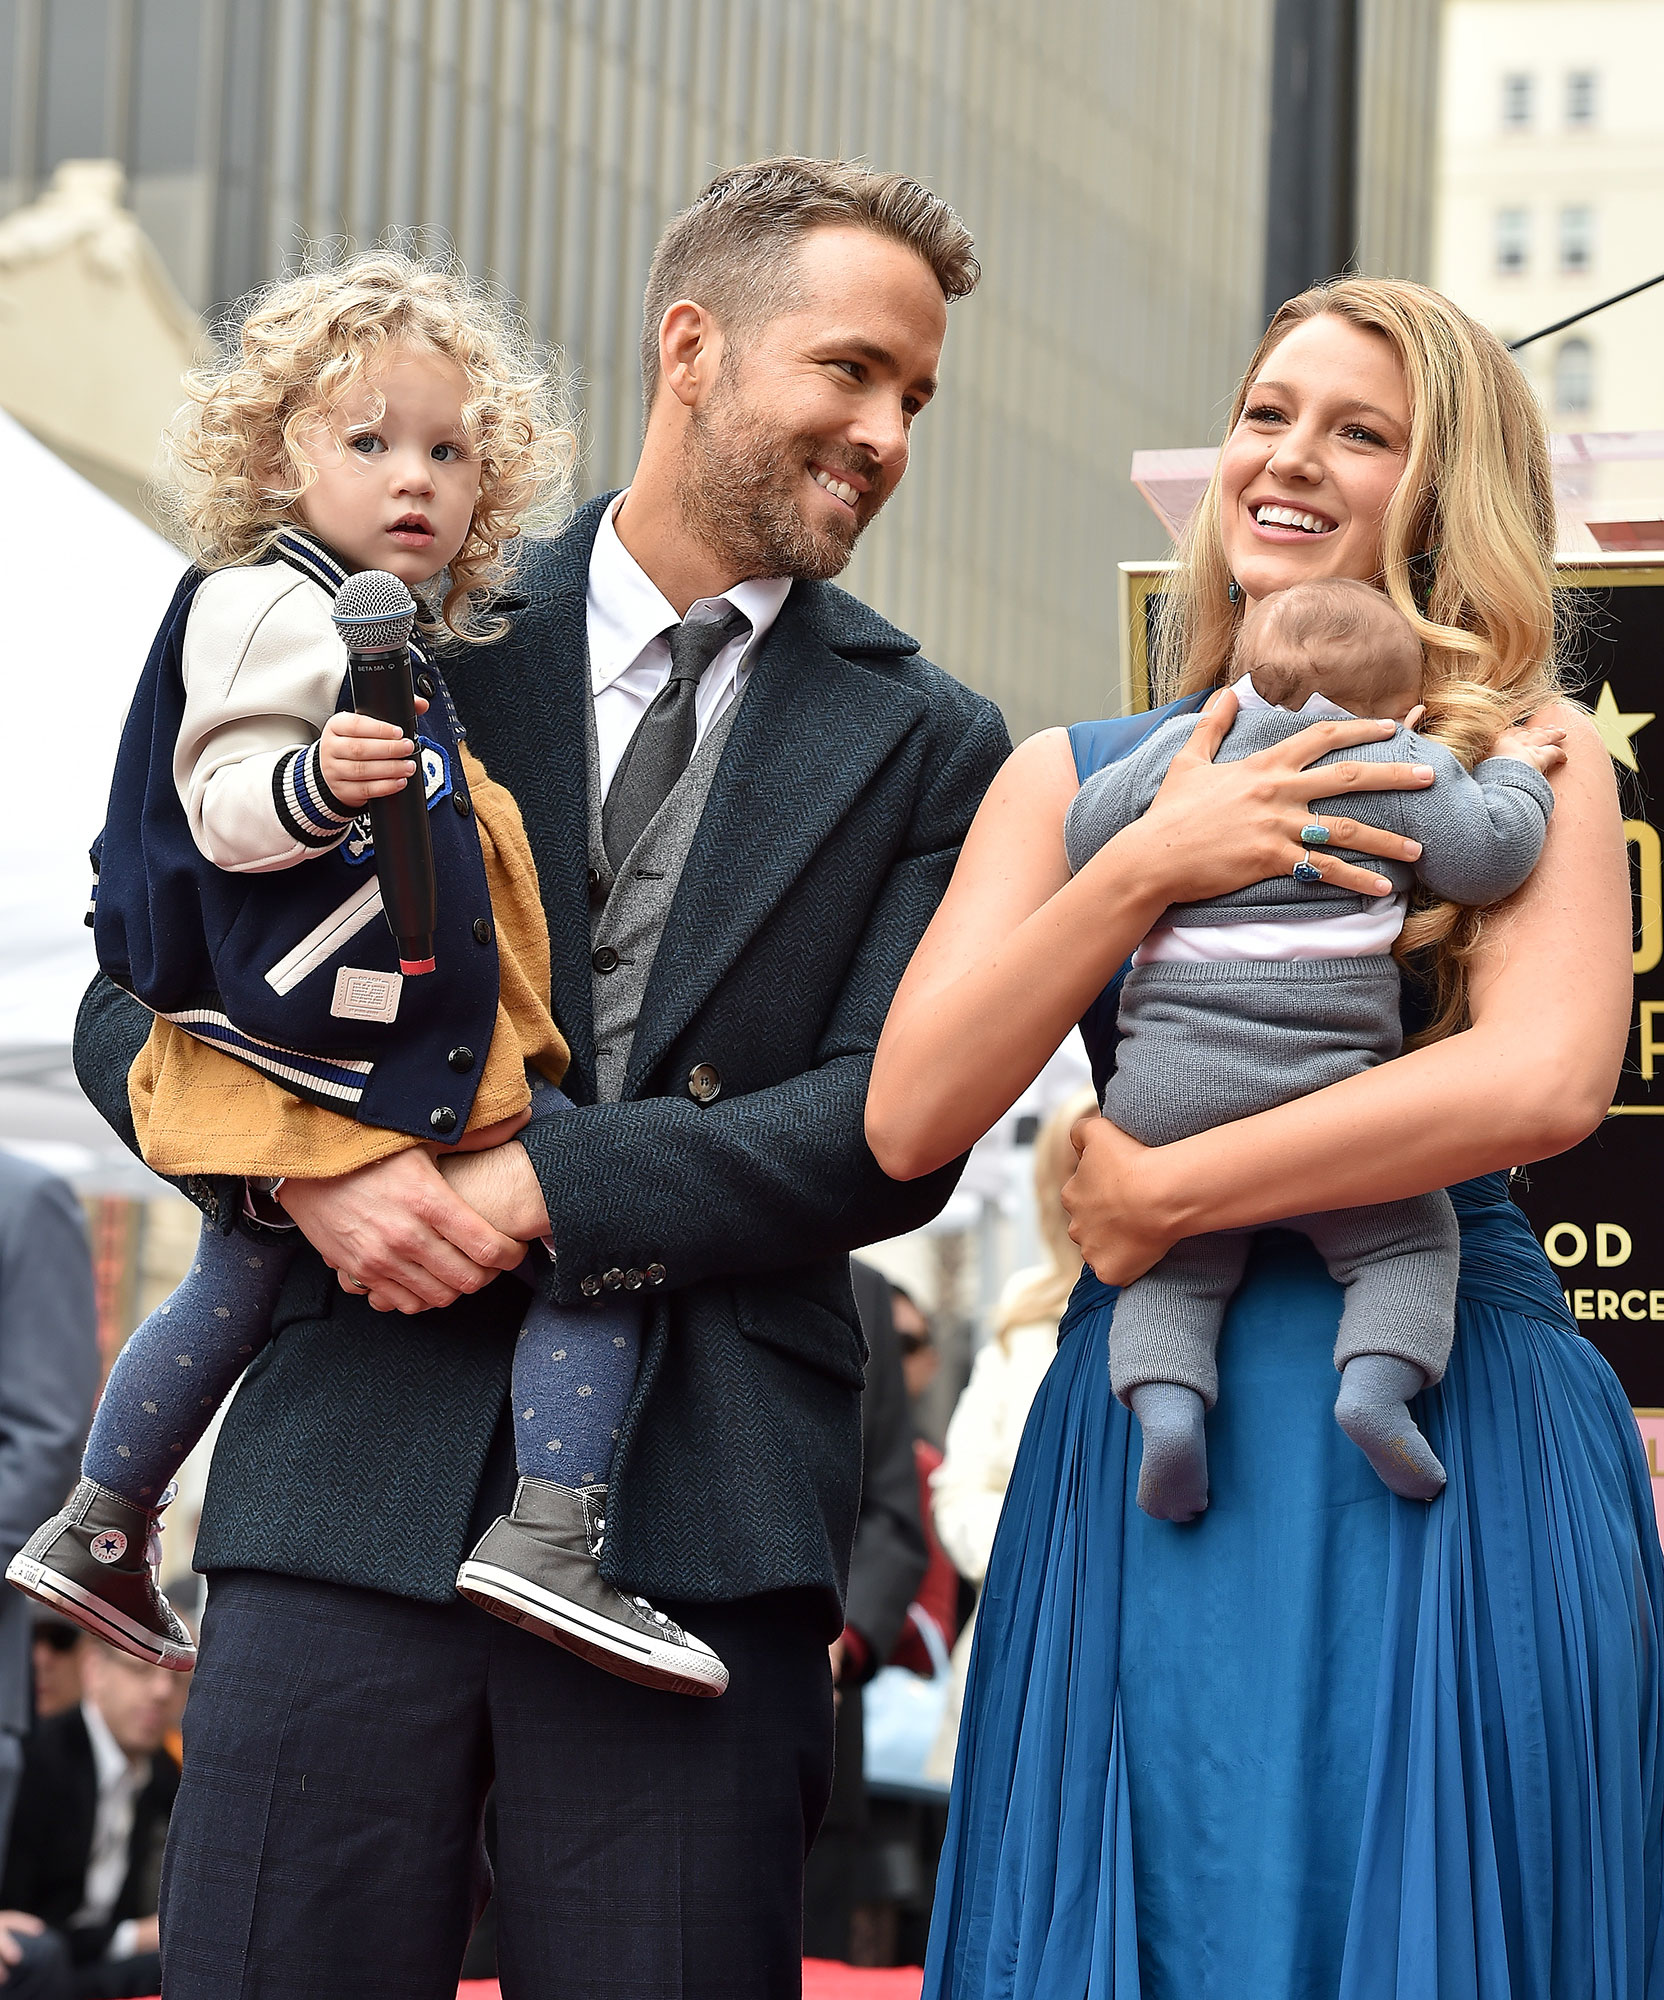 Ryan Reynolds and Blake Lively with Daughters James Reynolds and Ines Reynolds - Ryan Reynolds and Blake Lively with daughters James Reynolds and Ines Reynolds attend the ceremony honoring Ryan Reynolds with a Star on the Hollywood Walk of Fame on December 15, 2016 in Hollywood, California.